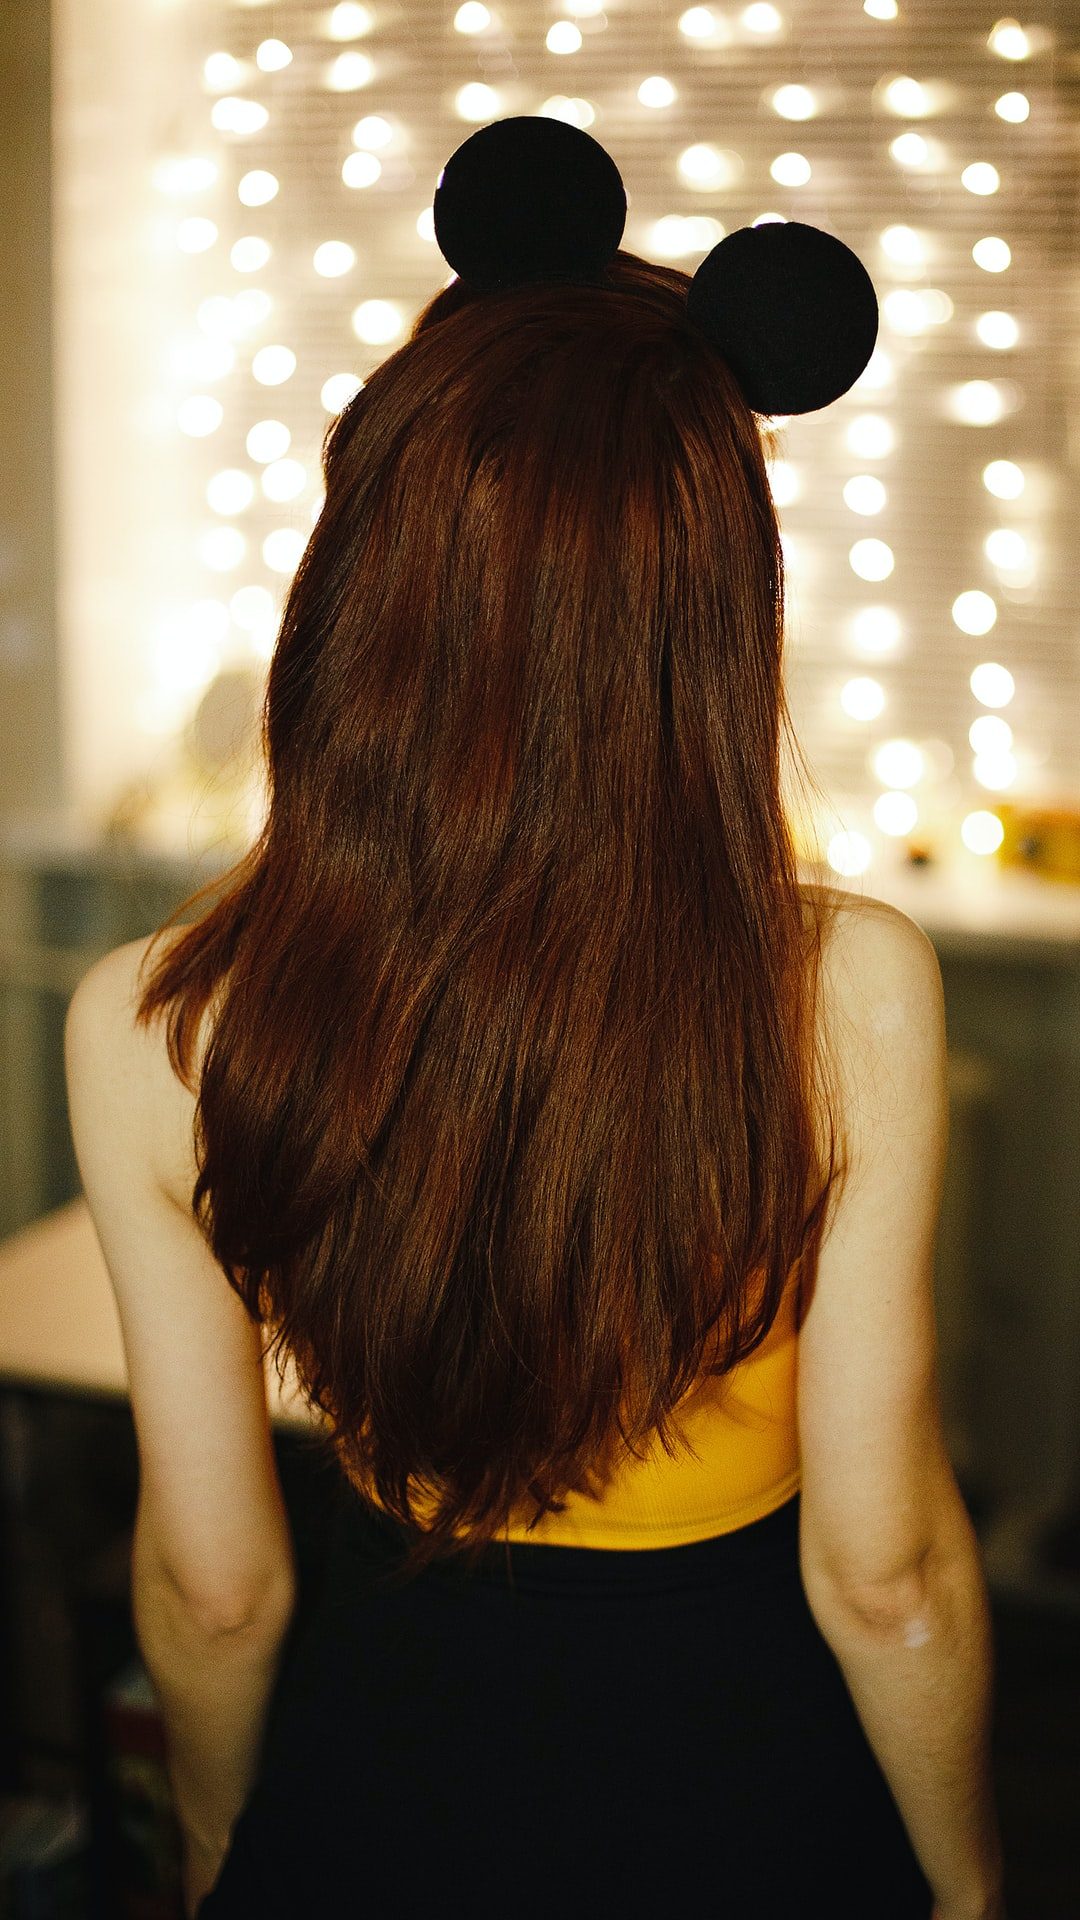 SUGARBEARHAIR: CAN THIS HYPED-UP SUPPLEMENT GROW YOUR HAIR?